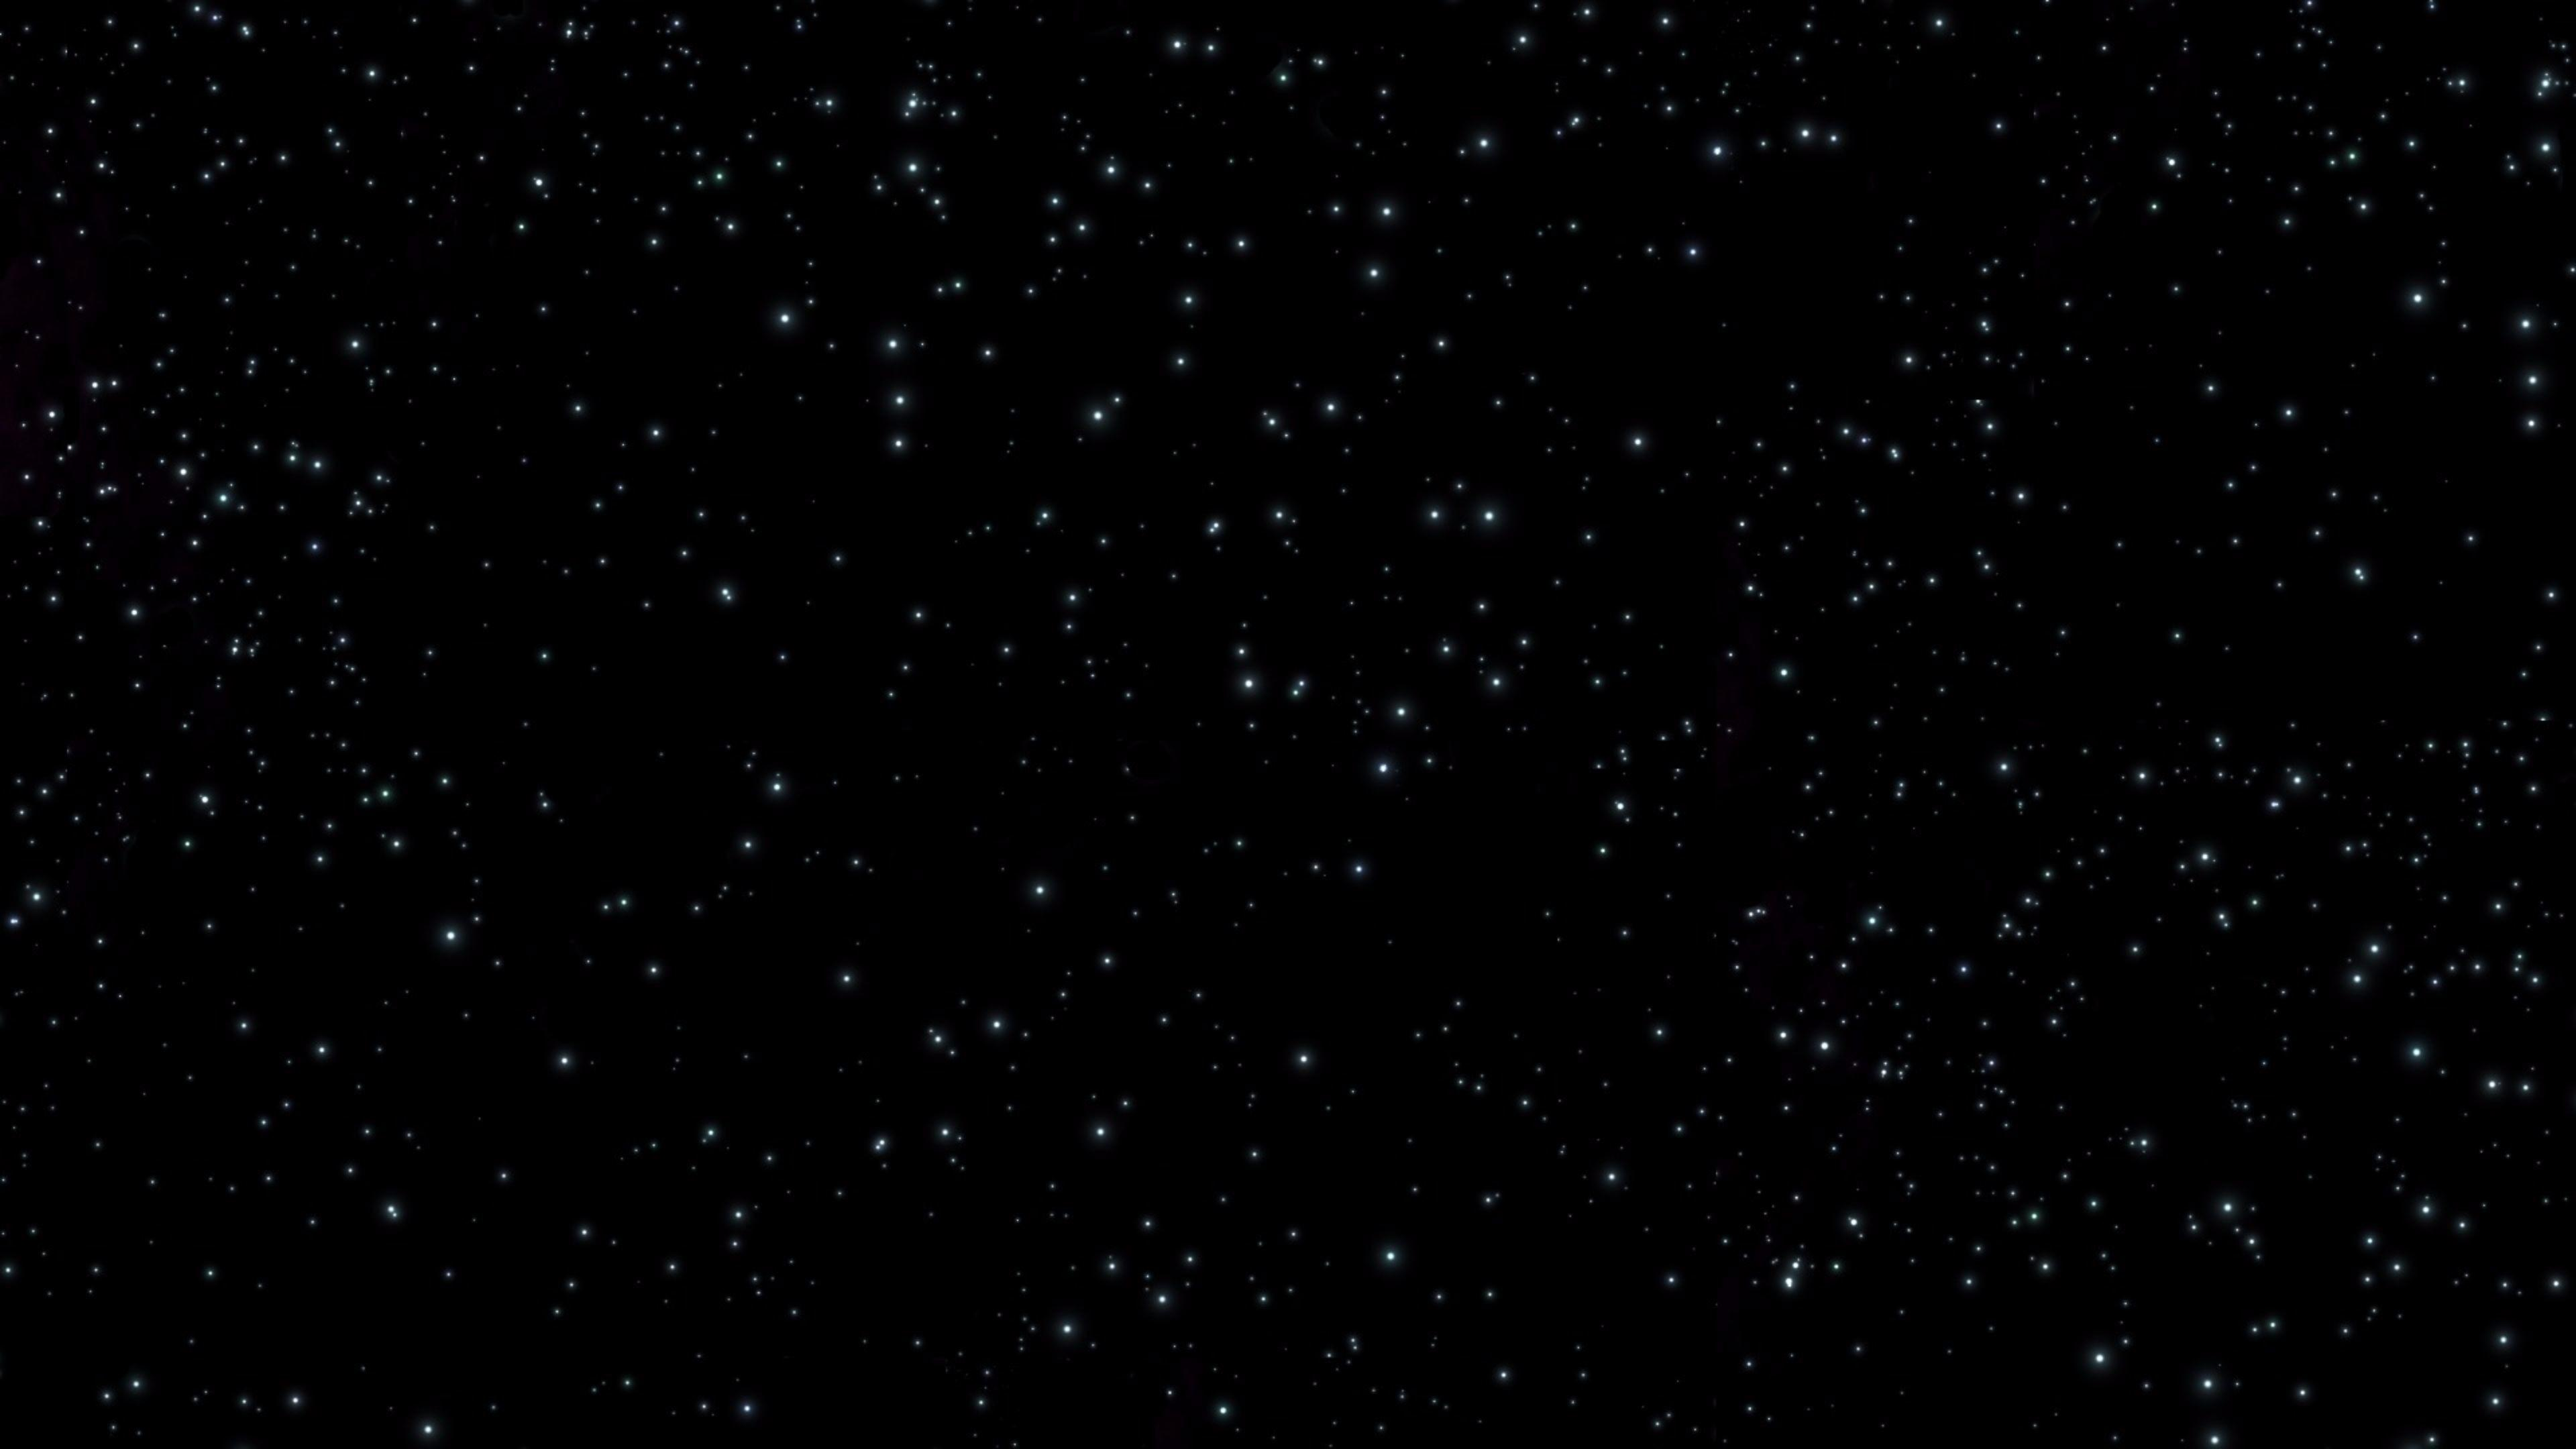 Aesthetic Black Space Wallpapers Wallpaper Cave